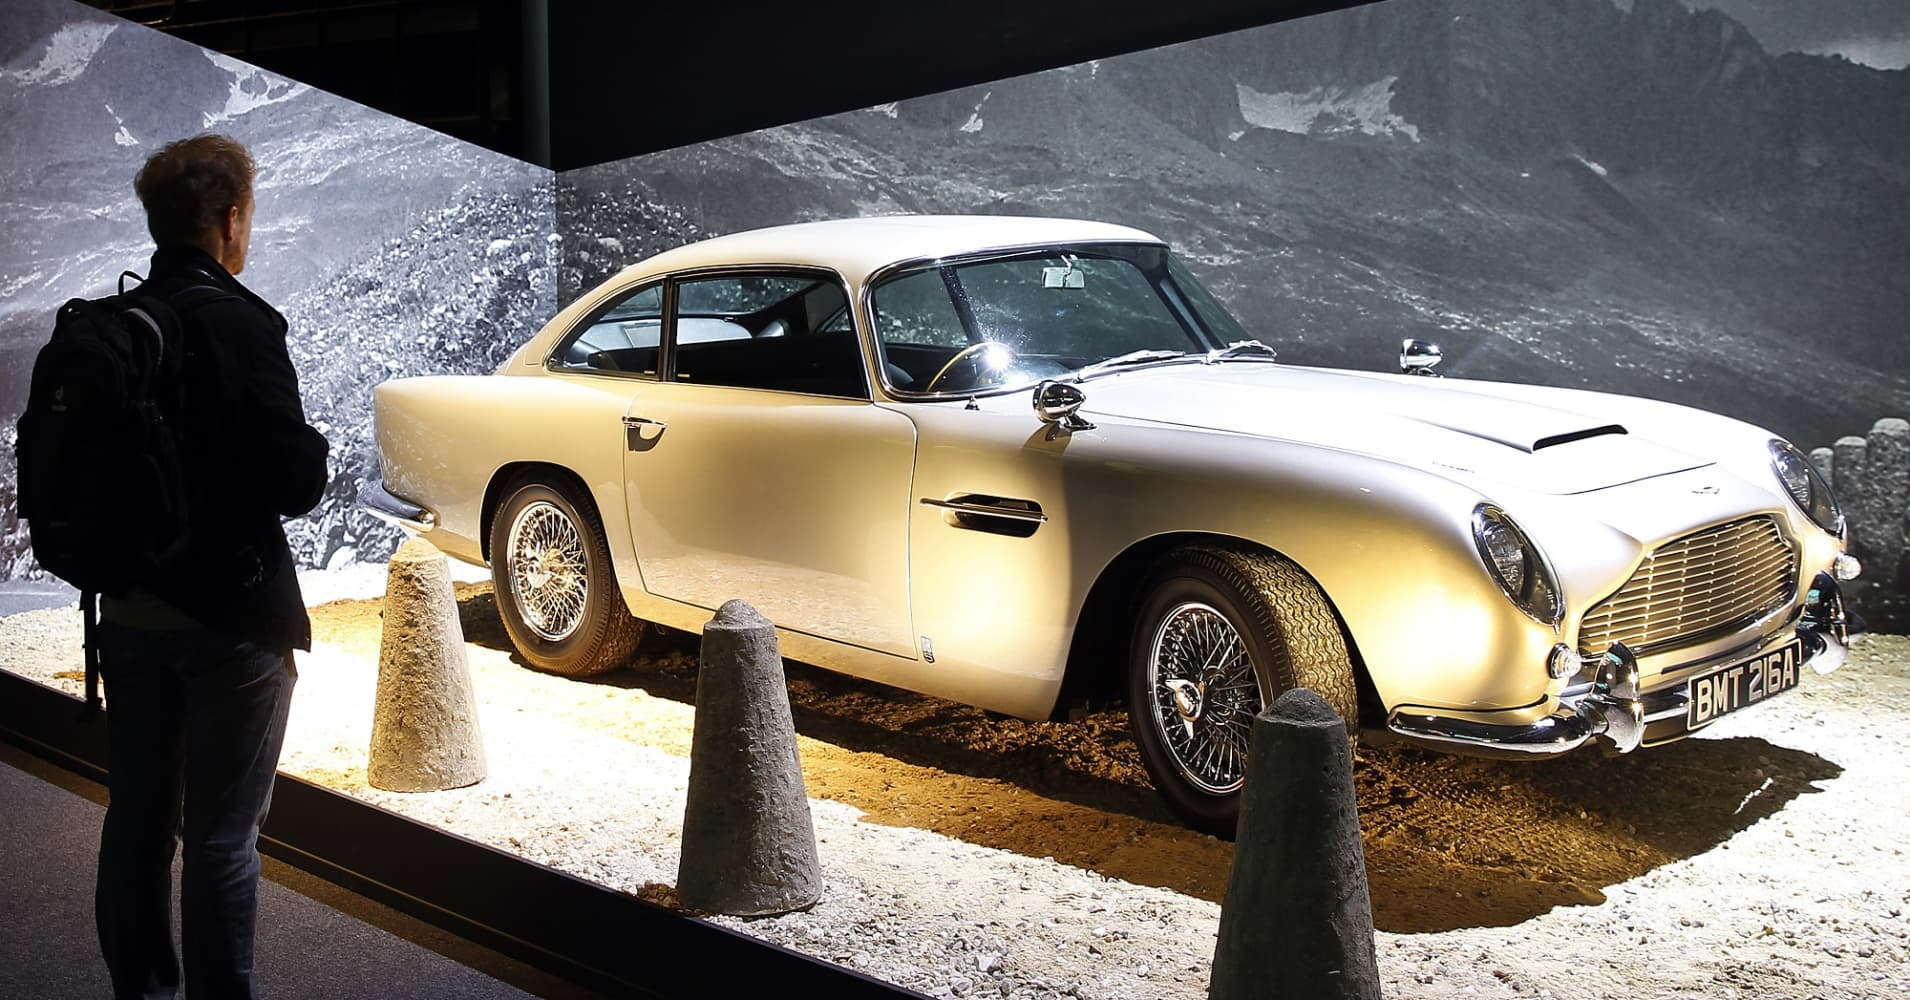 Aston Martin DB5 from the James Bond film 'Goldfinger' is displayed as part of an exhibition dedicated to James Bond 007 'The Designing 007: Fifty Years of Bond Style' at the Grande Halle de la Villette on April 16, 2016 in Paris, France.